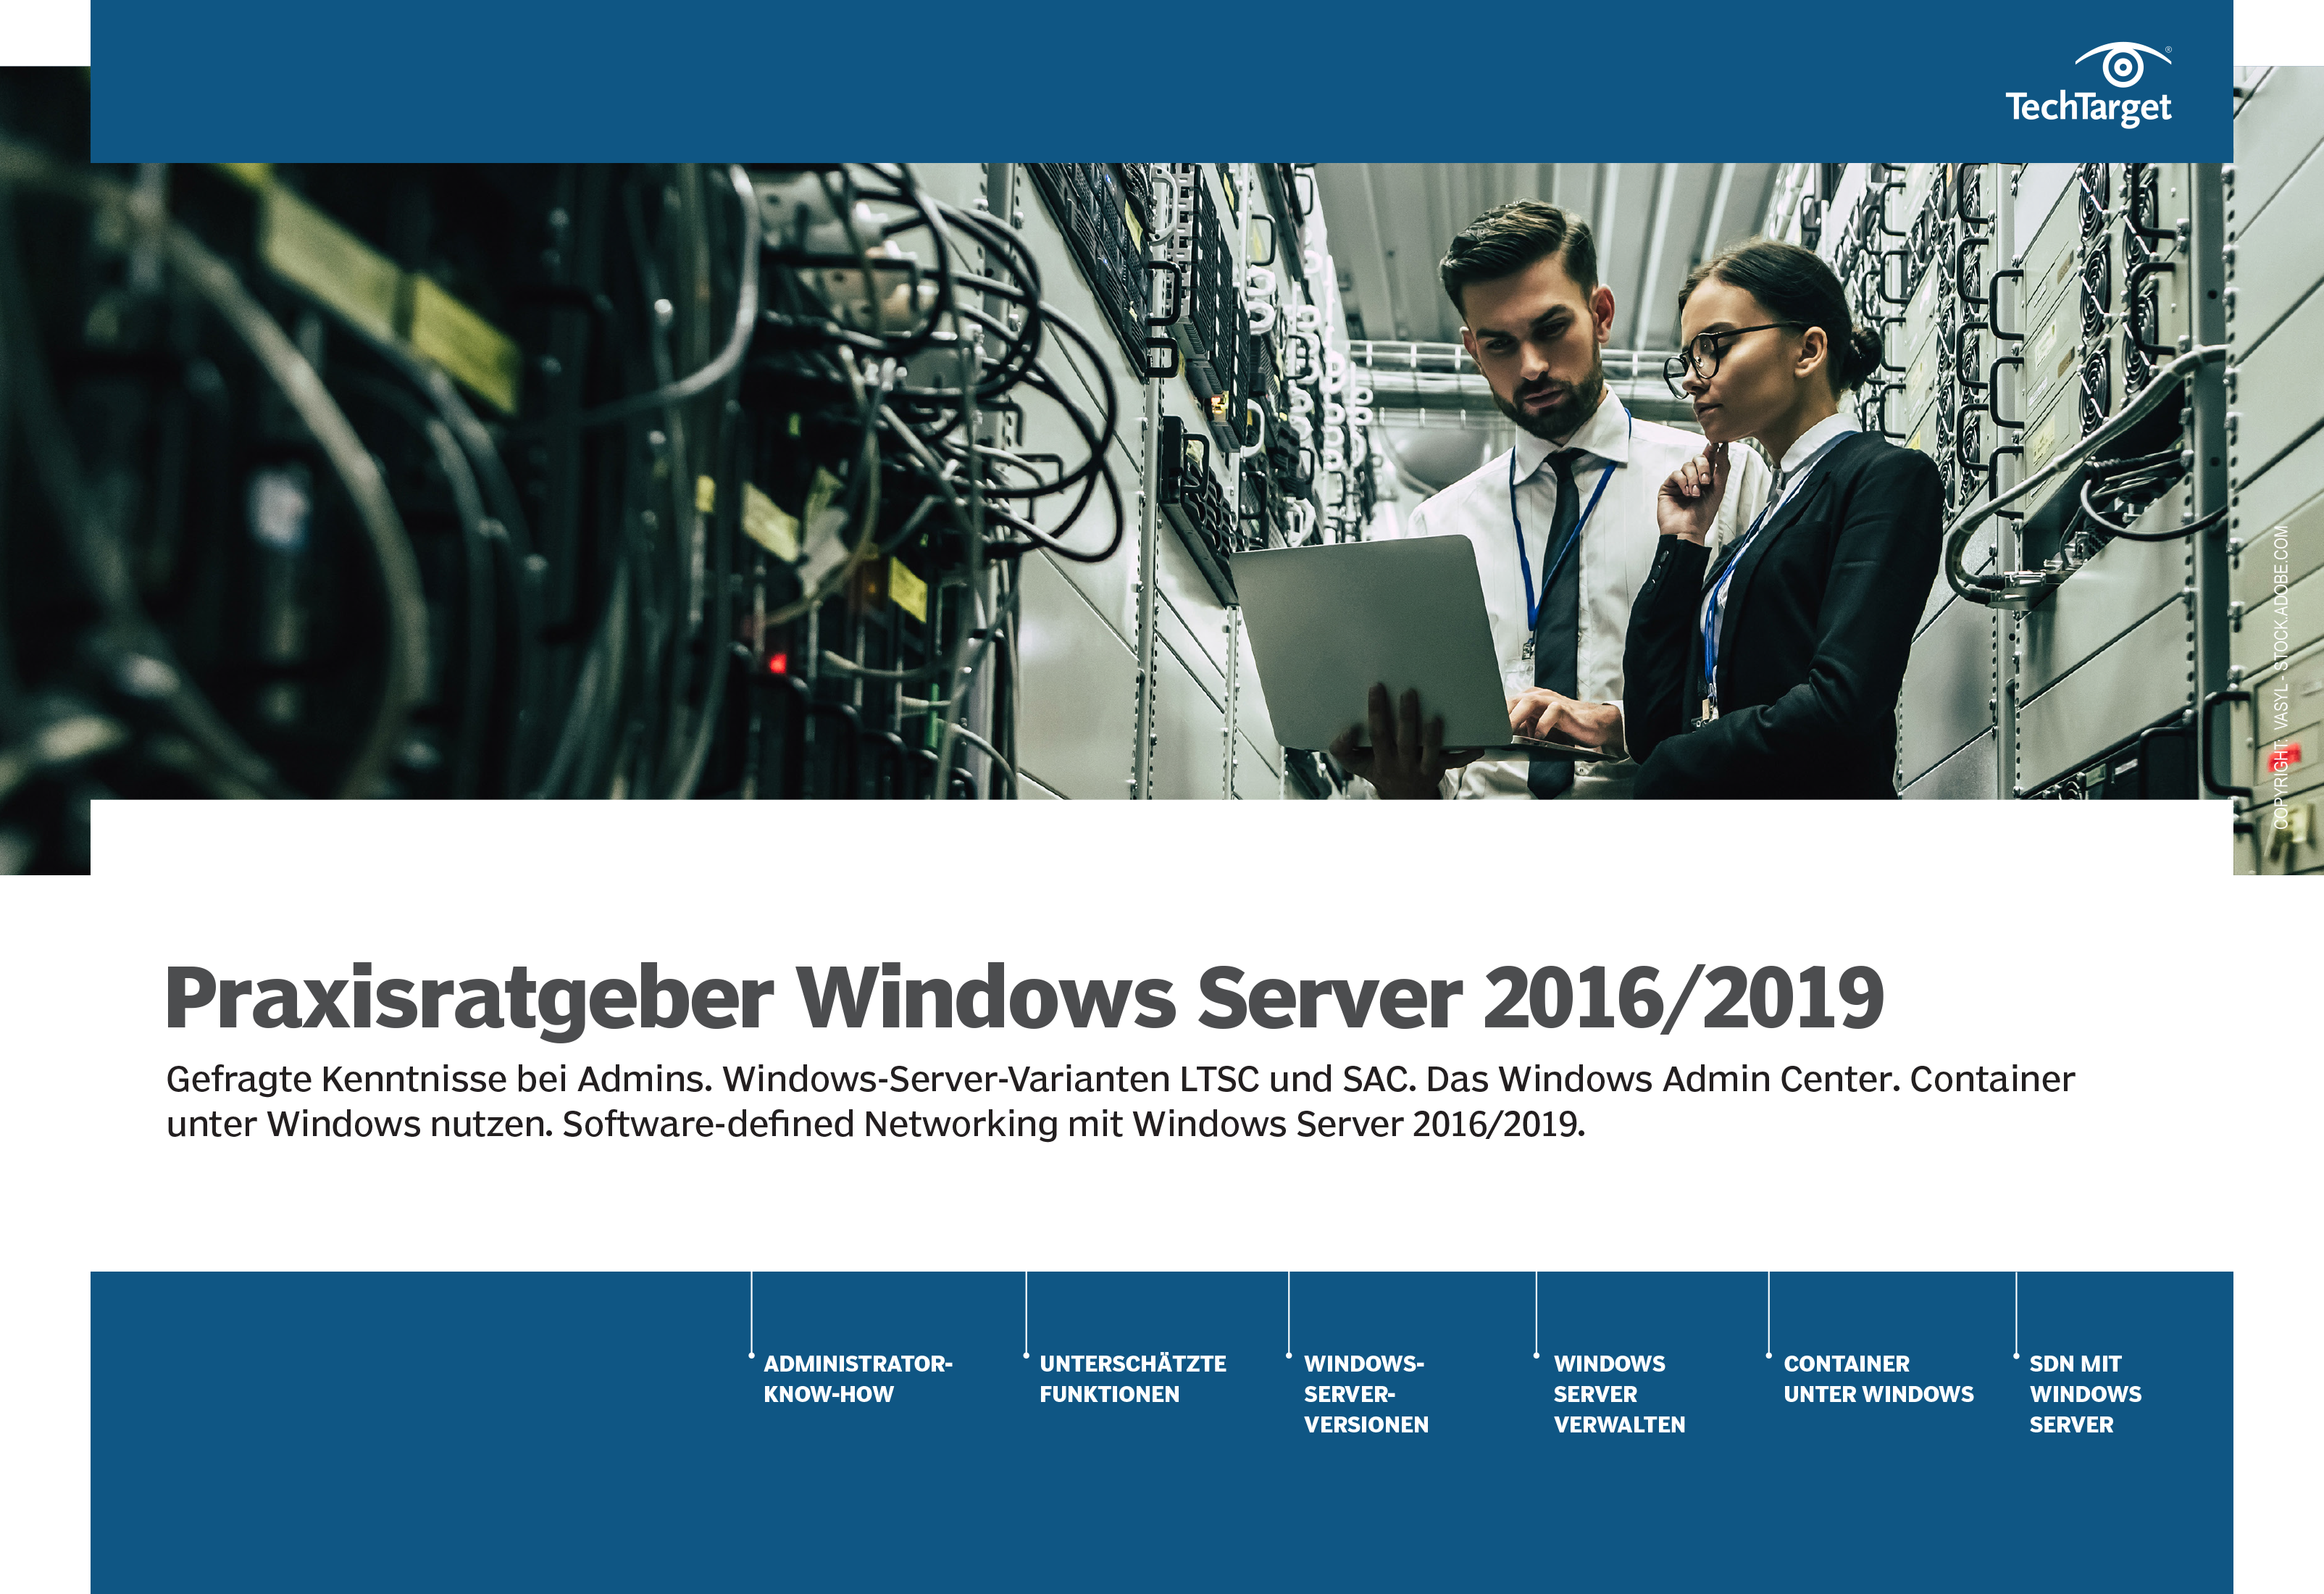 Data Center Management Informationen News Und Tipps 110 Panther Wiring Diagram For Ml Praxisratgeber Windows Server 2016 2019